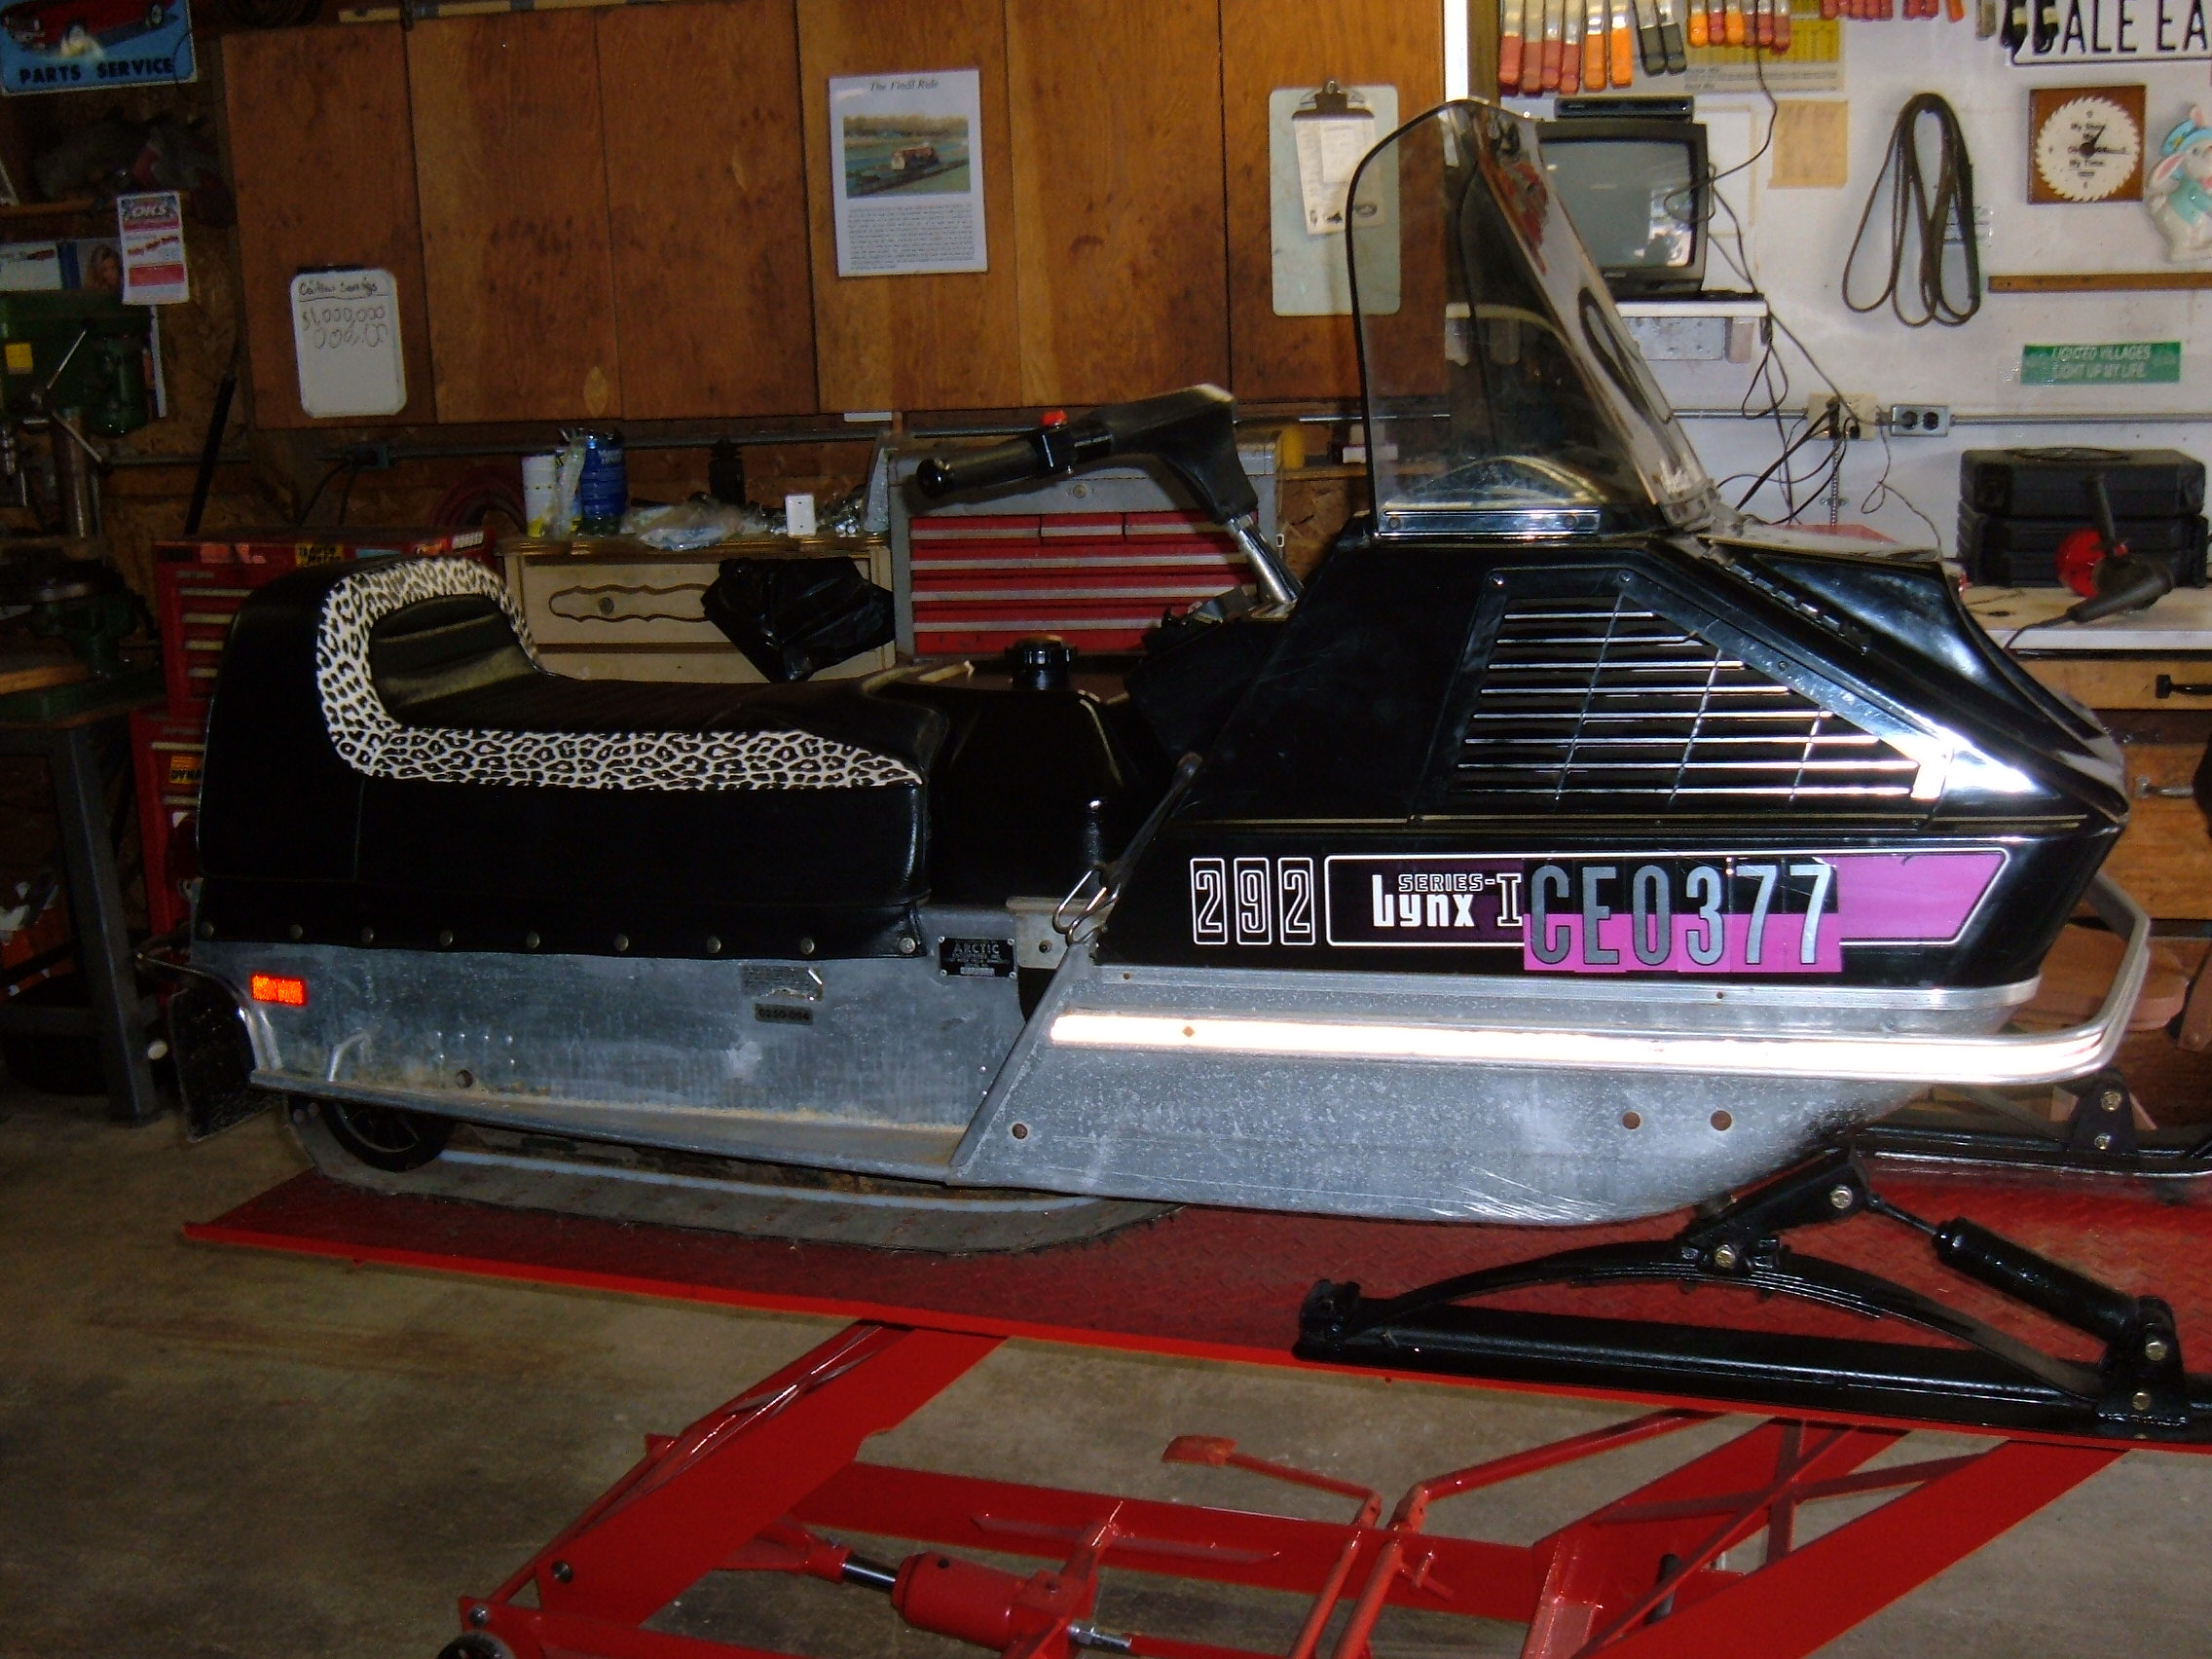 189749 1974 arctic cat lynx electrical 201142616515192_34067 1974 arctic cat lynx electrical  at mr168.co